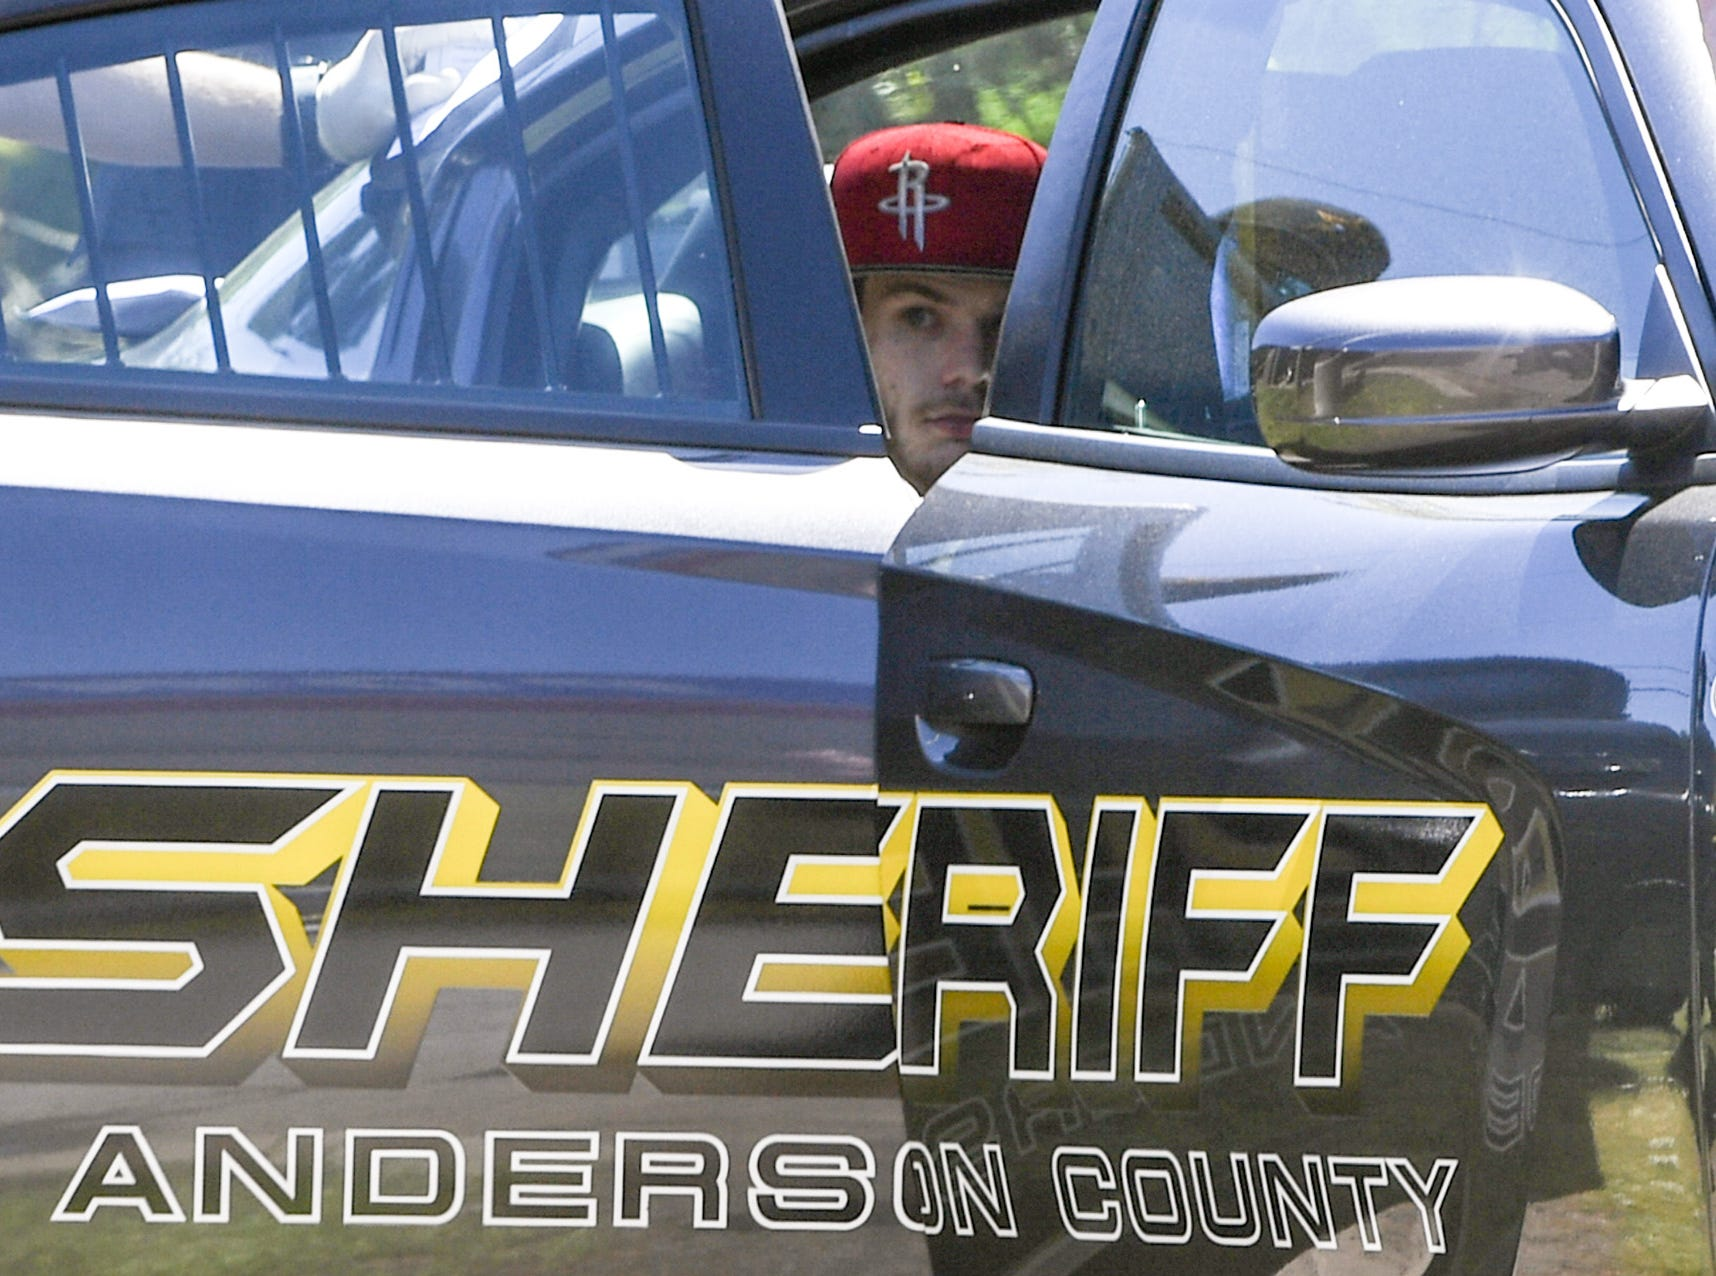 Anderson County Sheriff's Office deputies retain one of two men in handcuffs after responding to a shooting at Hilltop Motel on Hwy 29 Wednesday, April 10, 2019.